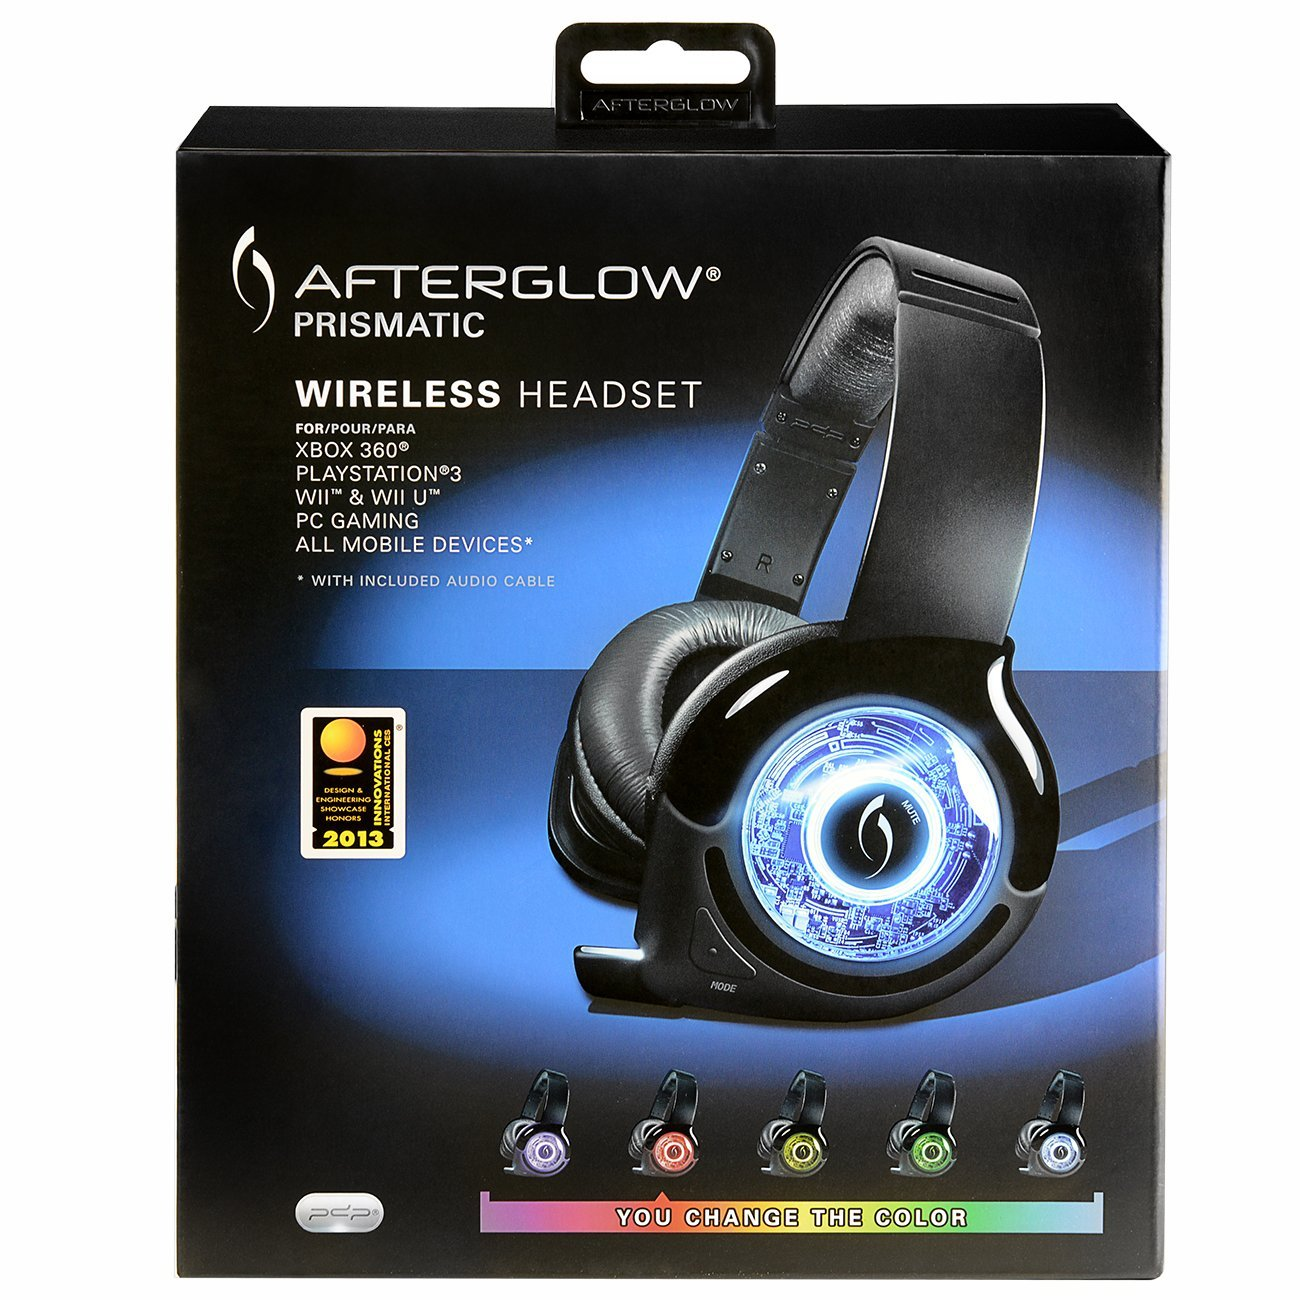 how to set up afterglow ps3 controller